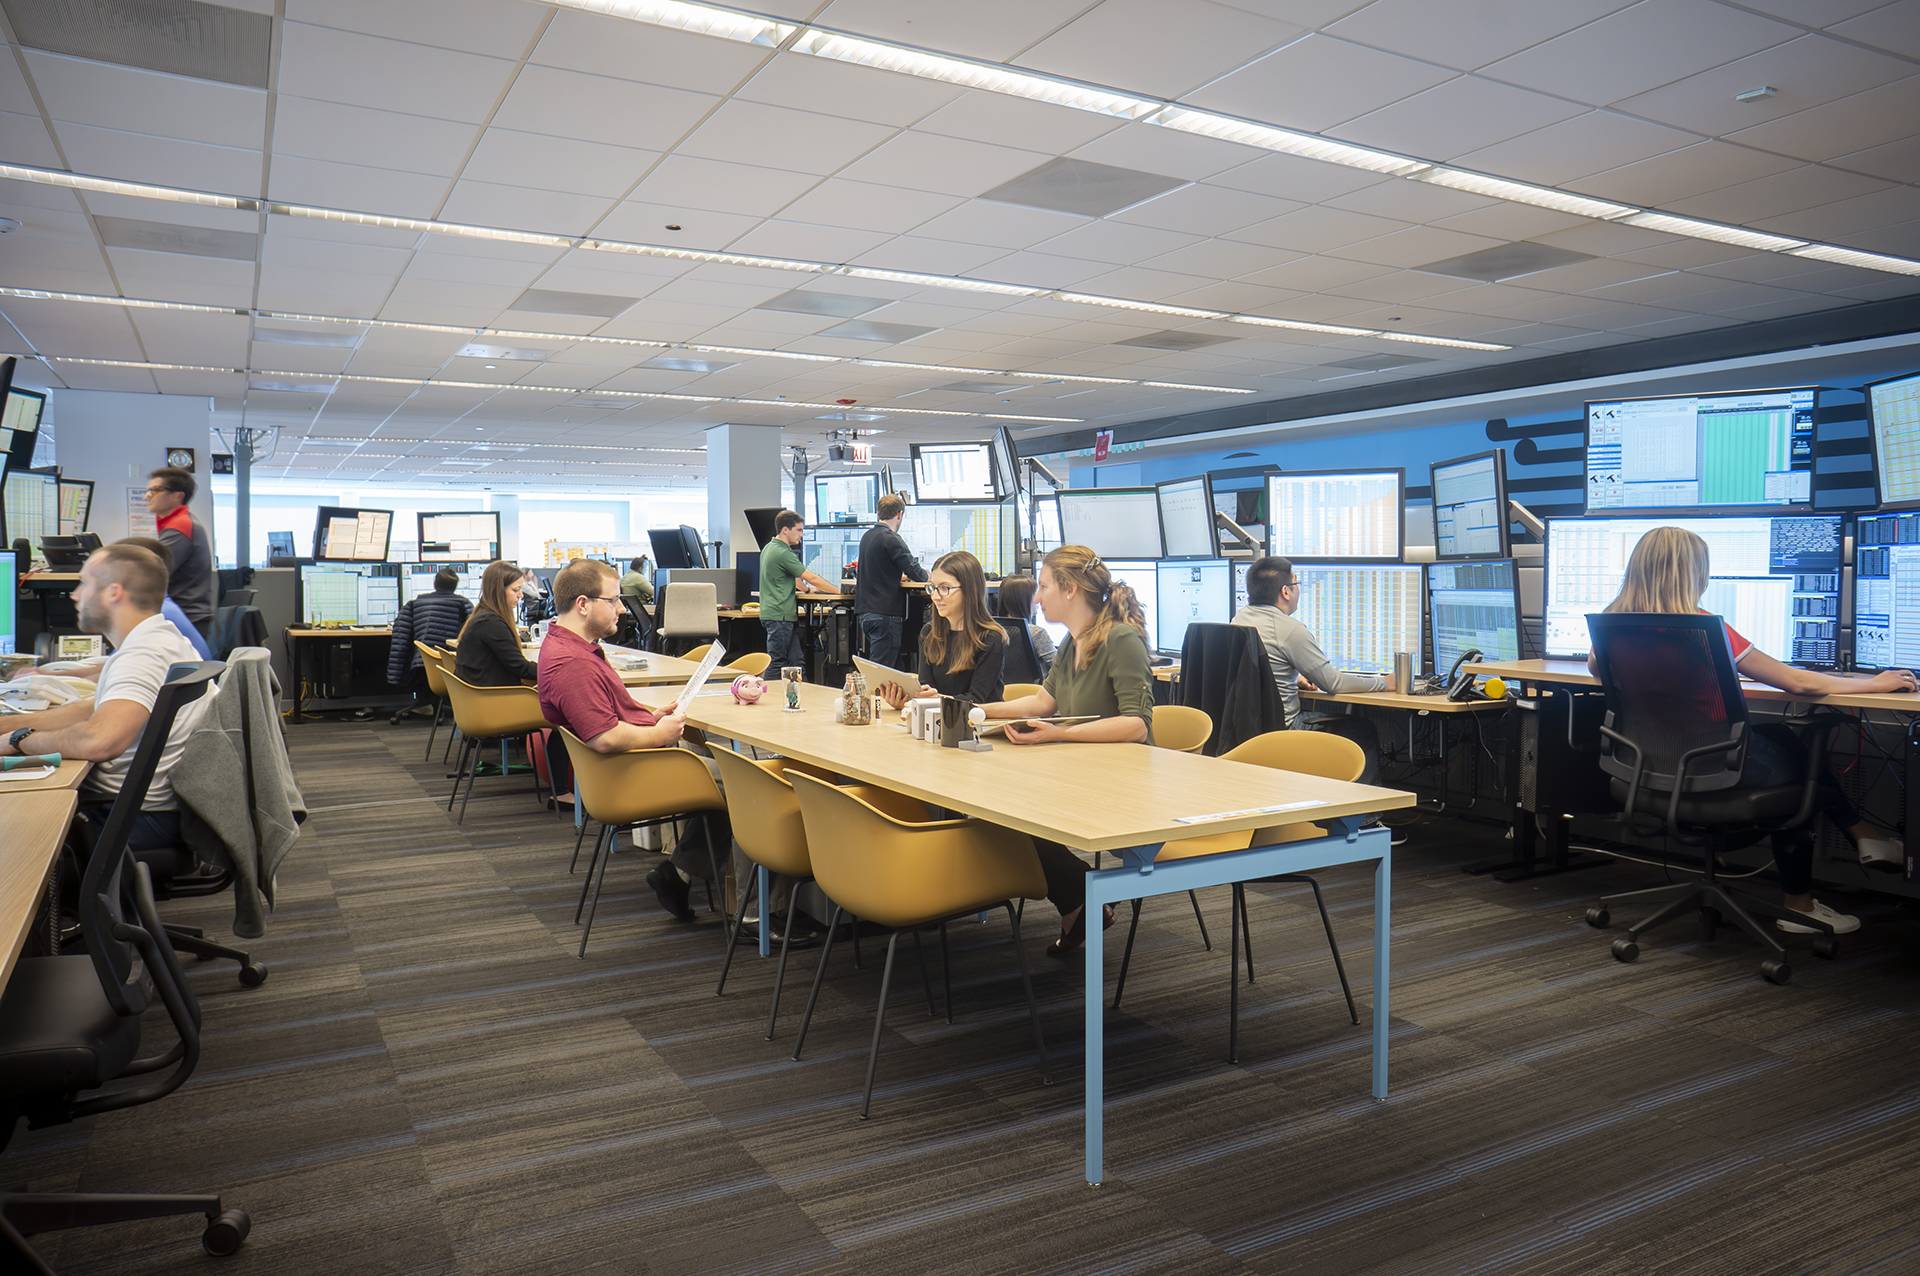 A view of one of the trading pods (or group of desks) in the Belvedere office. Some employees work in tables in the center while others sit at their desks around the perimeter.